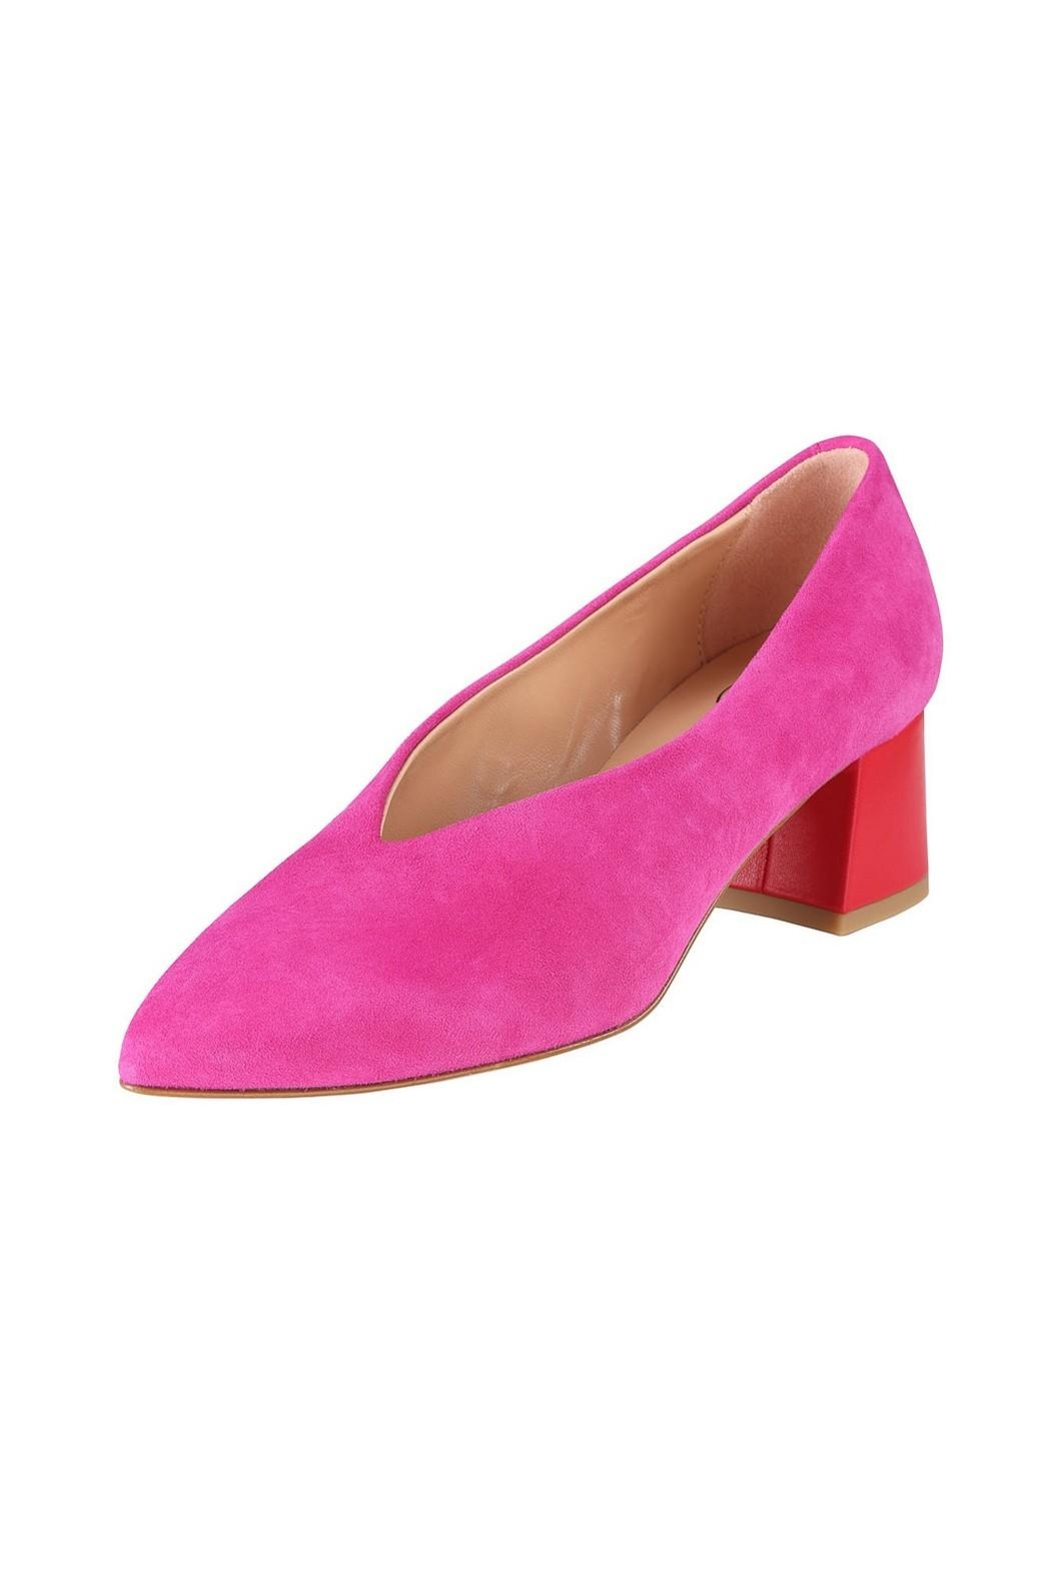 Pascucci Hot-Pink Suede Pumps - Front Full Image